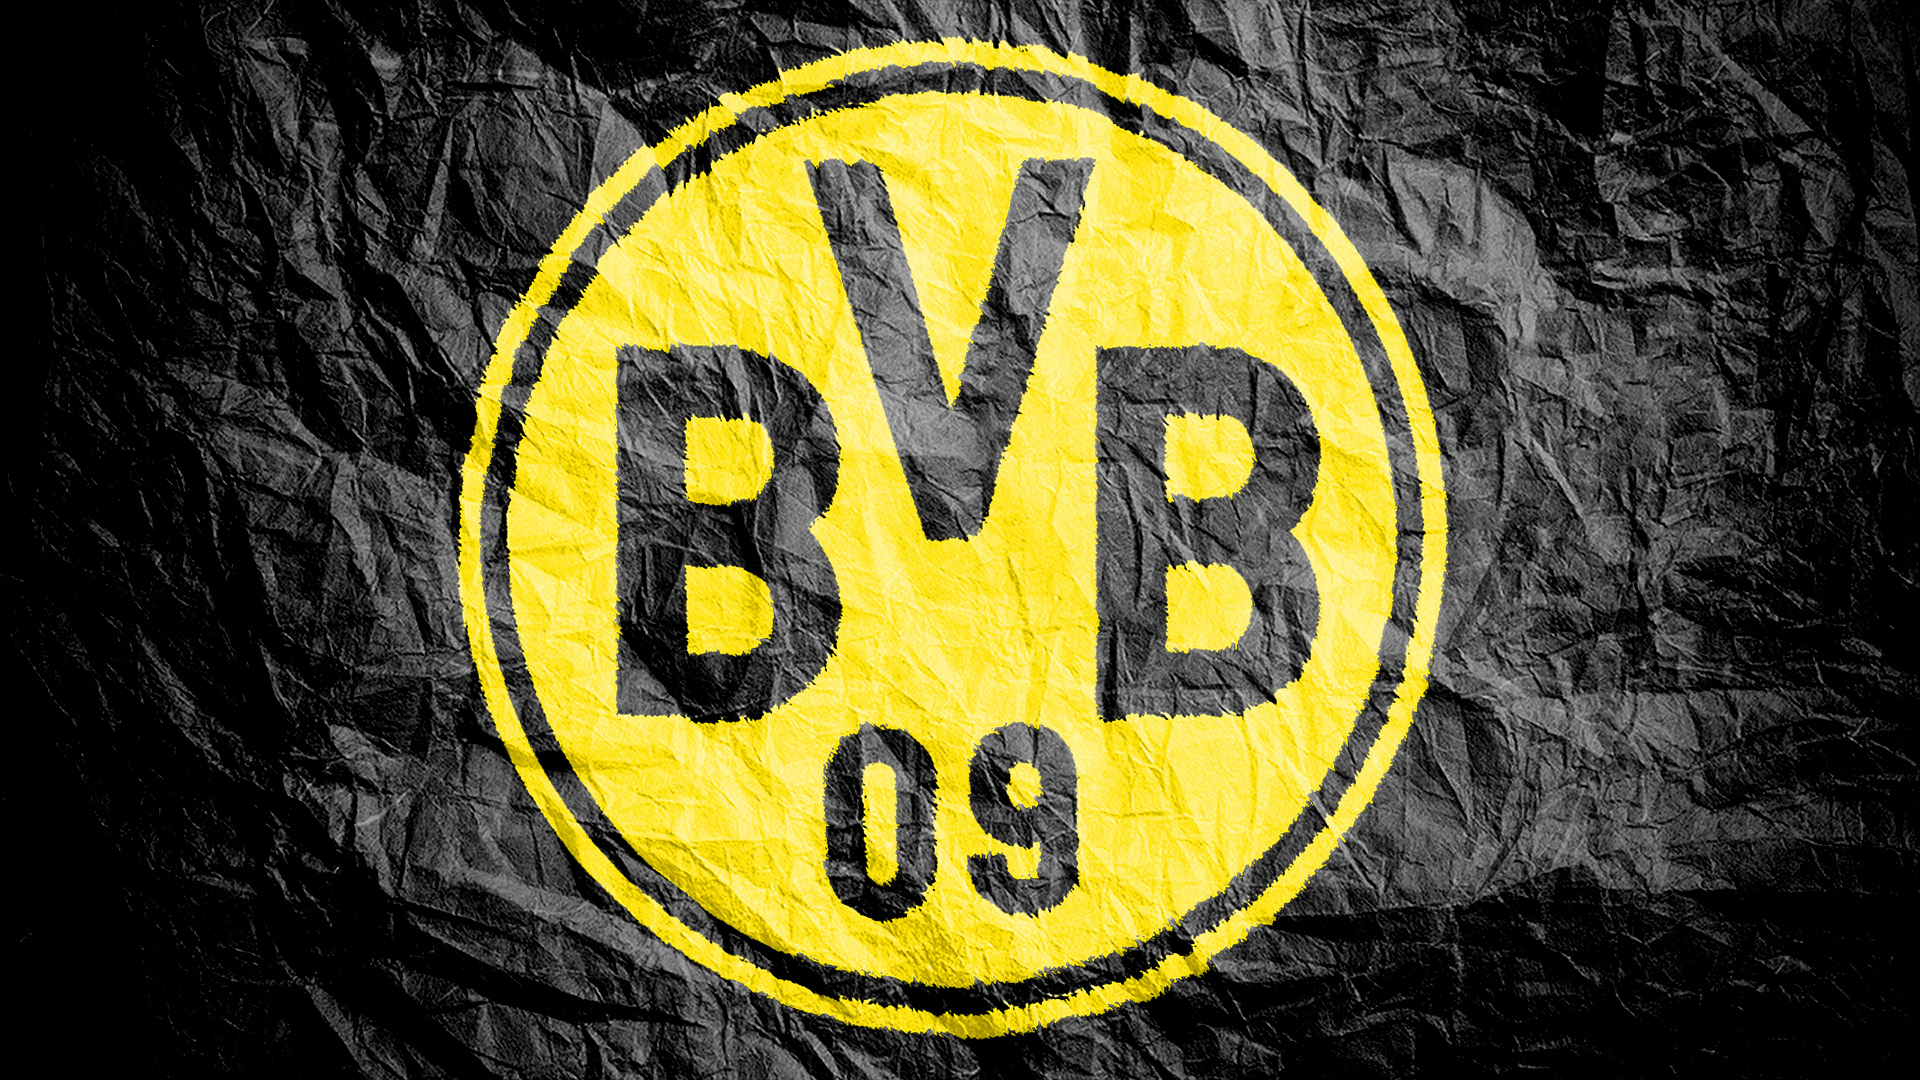 bvb 09 borussia dortmund bilder. Black Bedroom Furniture Sets. Home Design Ideas